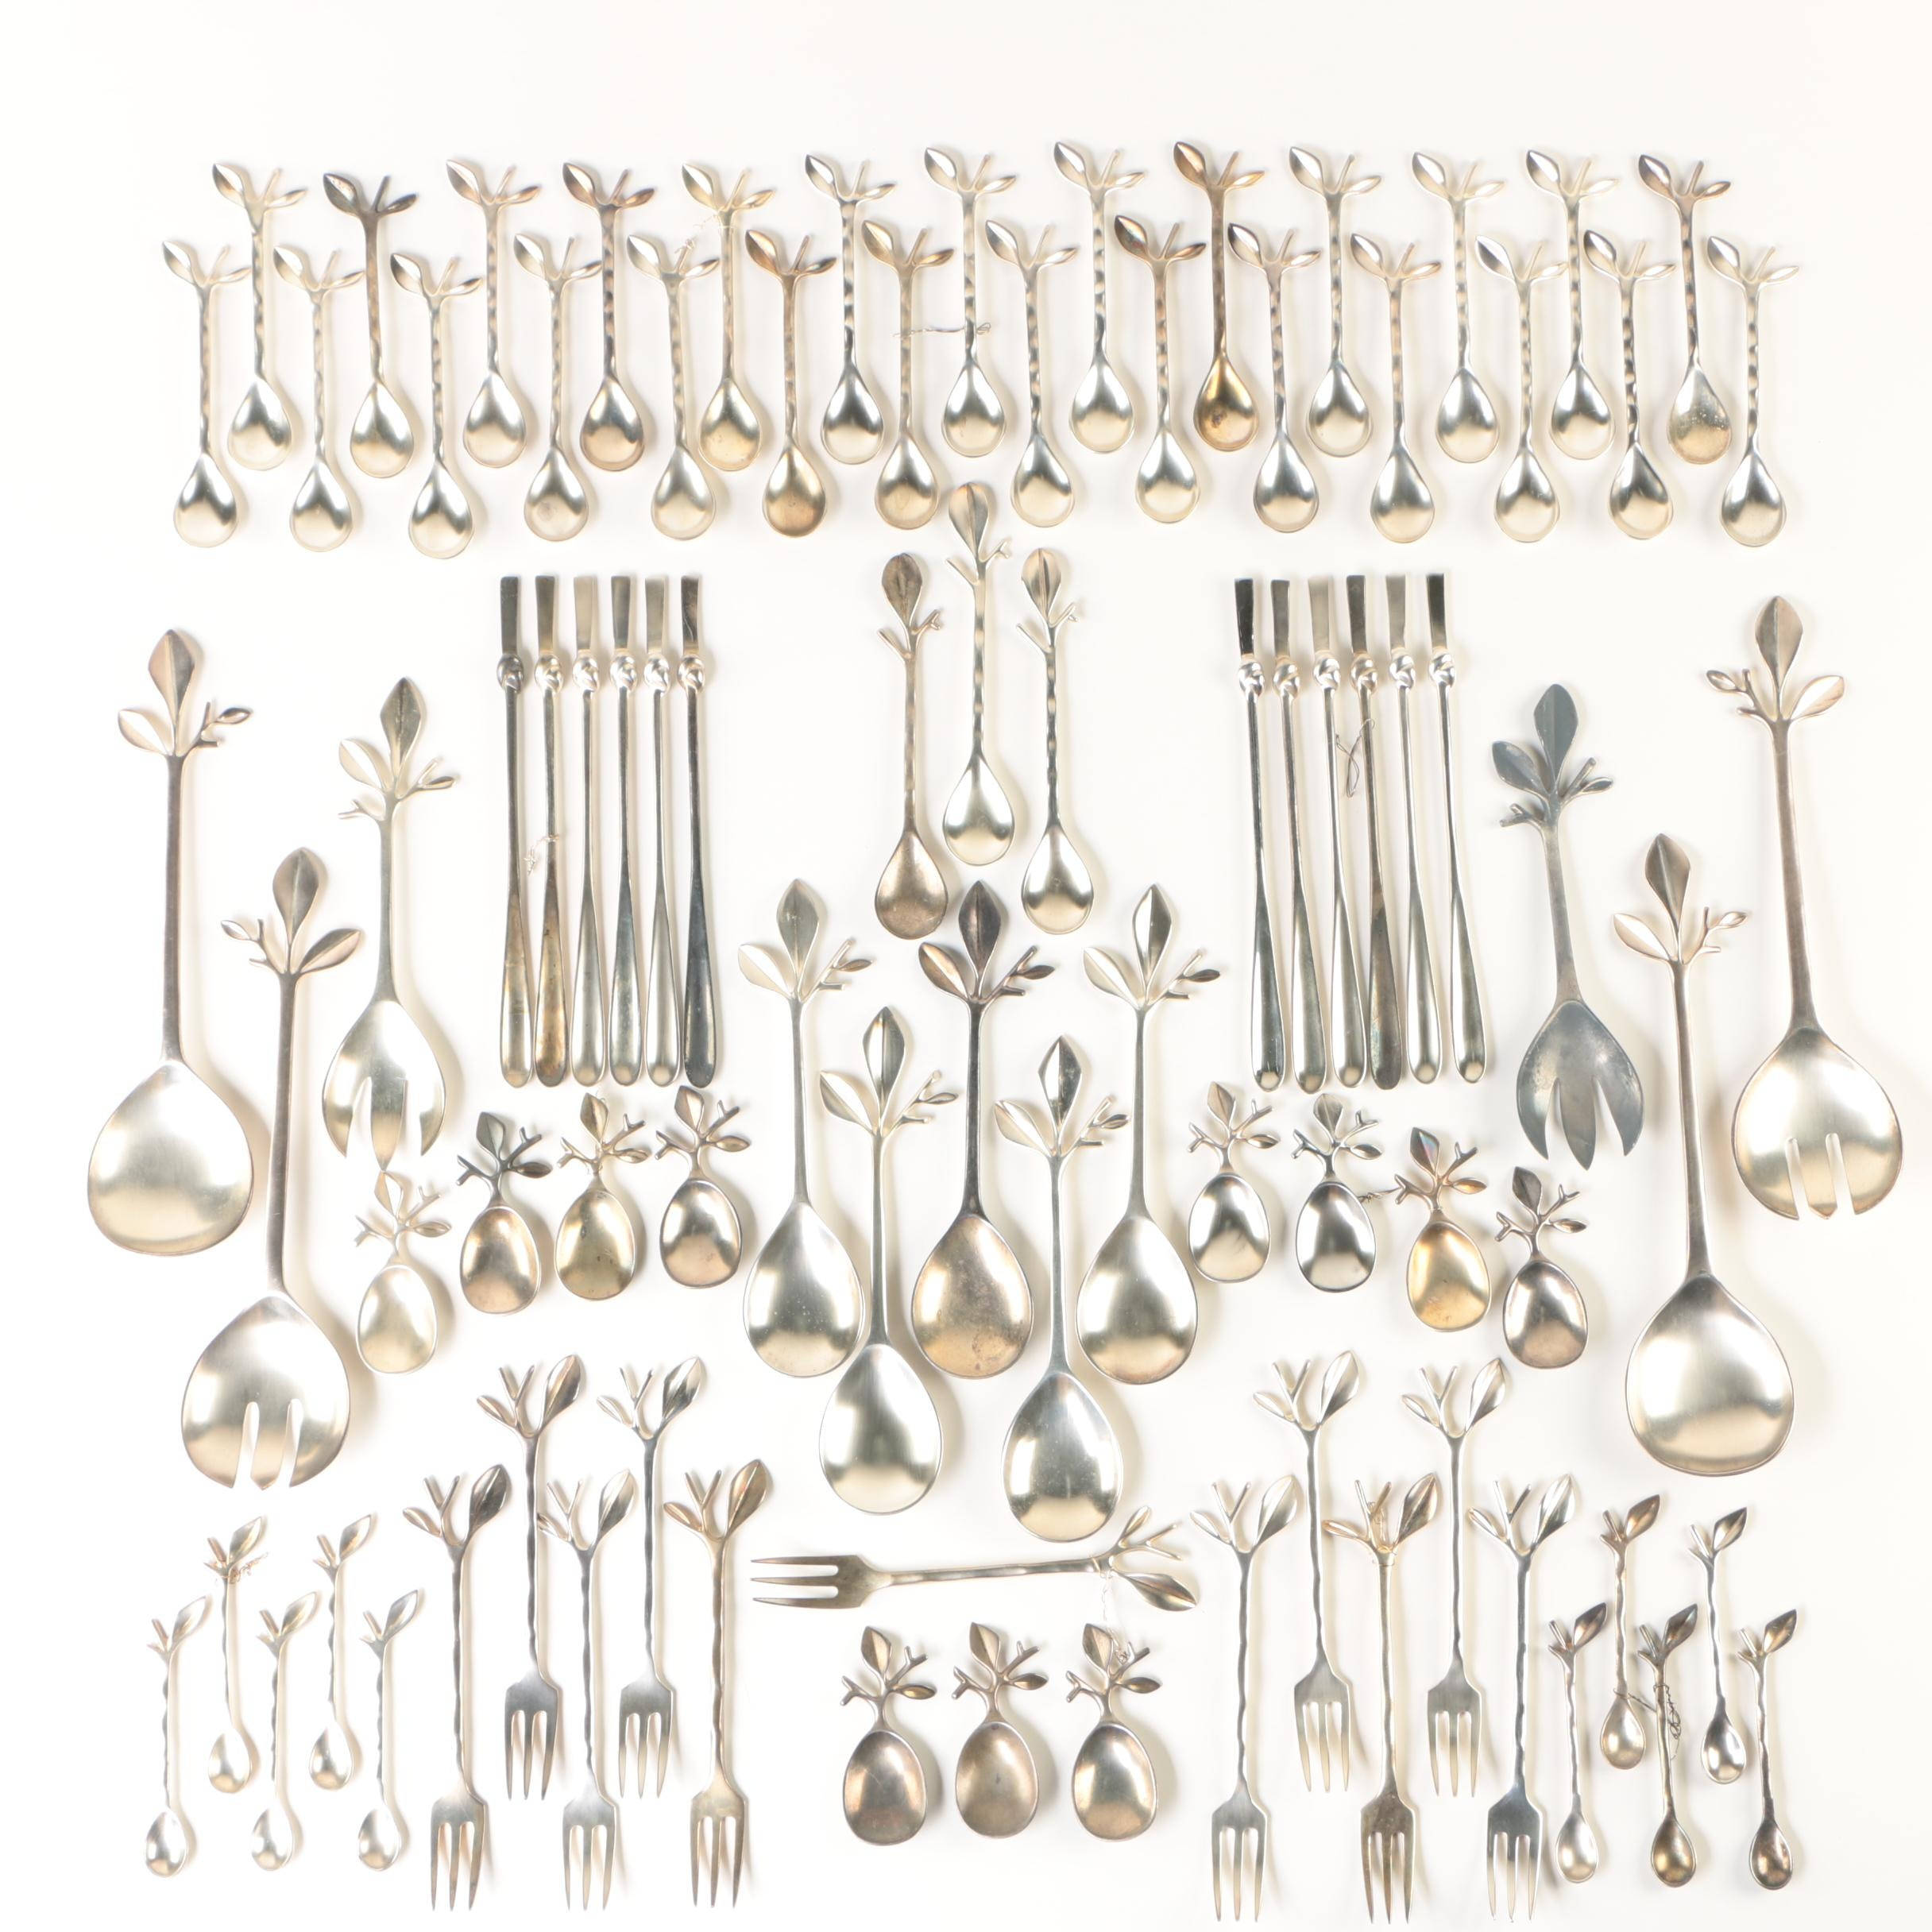 Blue Leaves French Nature-Inspired Silver Plate Serving Utensils and Flatware